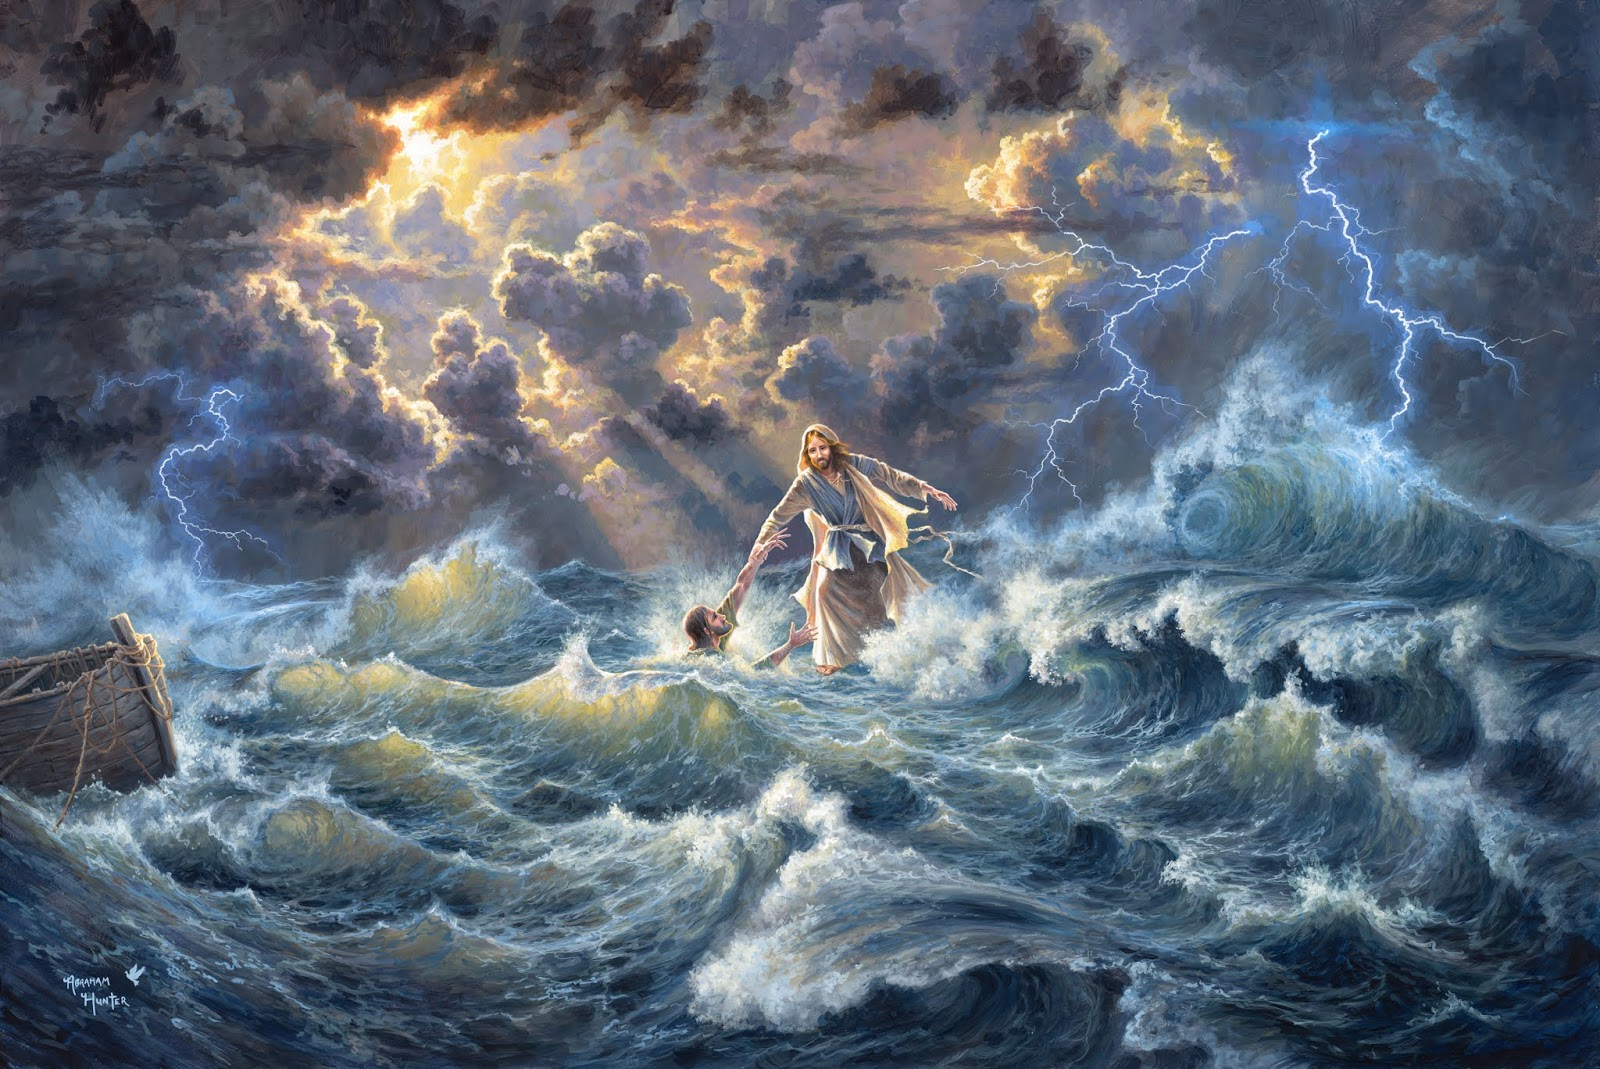 Jonah's preaching paled in comparison to the wonderfully profound teachings of Jesus, which were accompanied by many miracles that demonstrated His authority over nature, sickness, demons, and death.